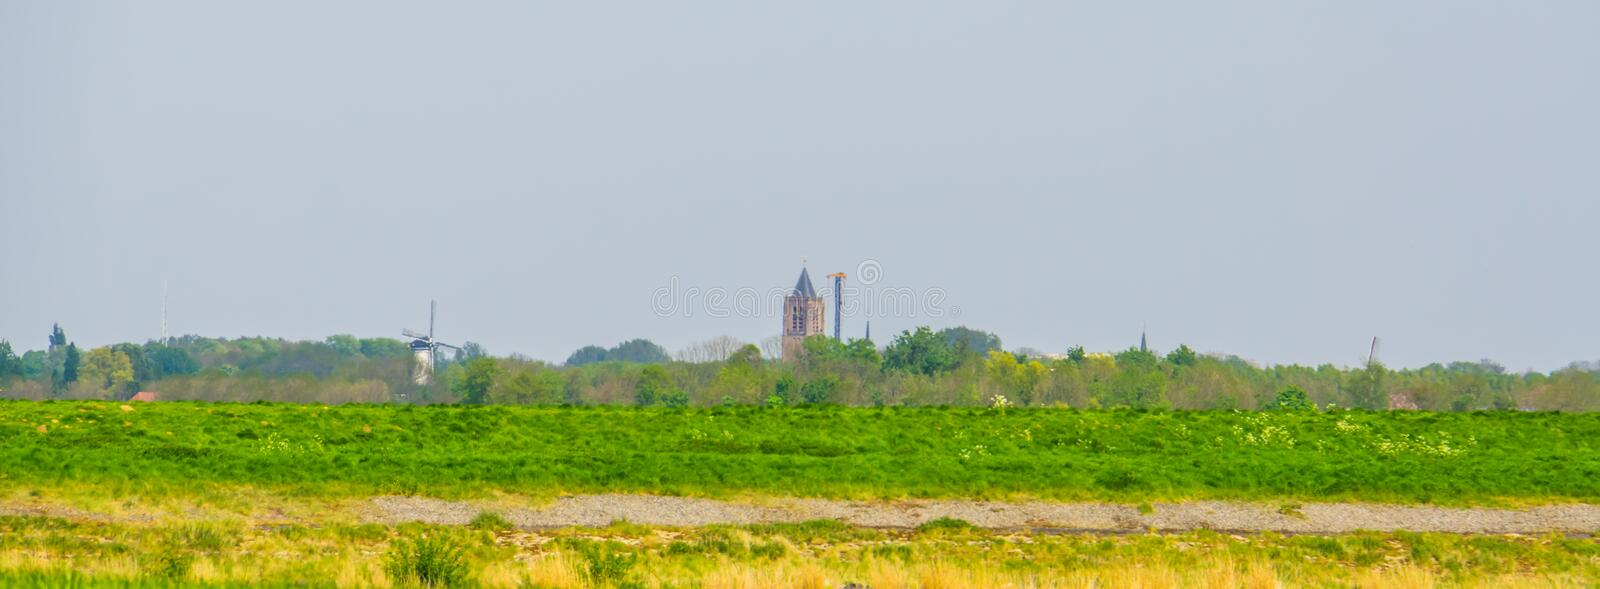 Typical dutch green landscape with a church and windmills, skyline Tholen, Zeeland, The netherlands. A typical dutch green landscape with a church and windmills stock photo